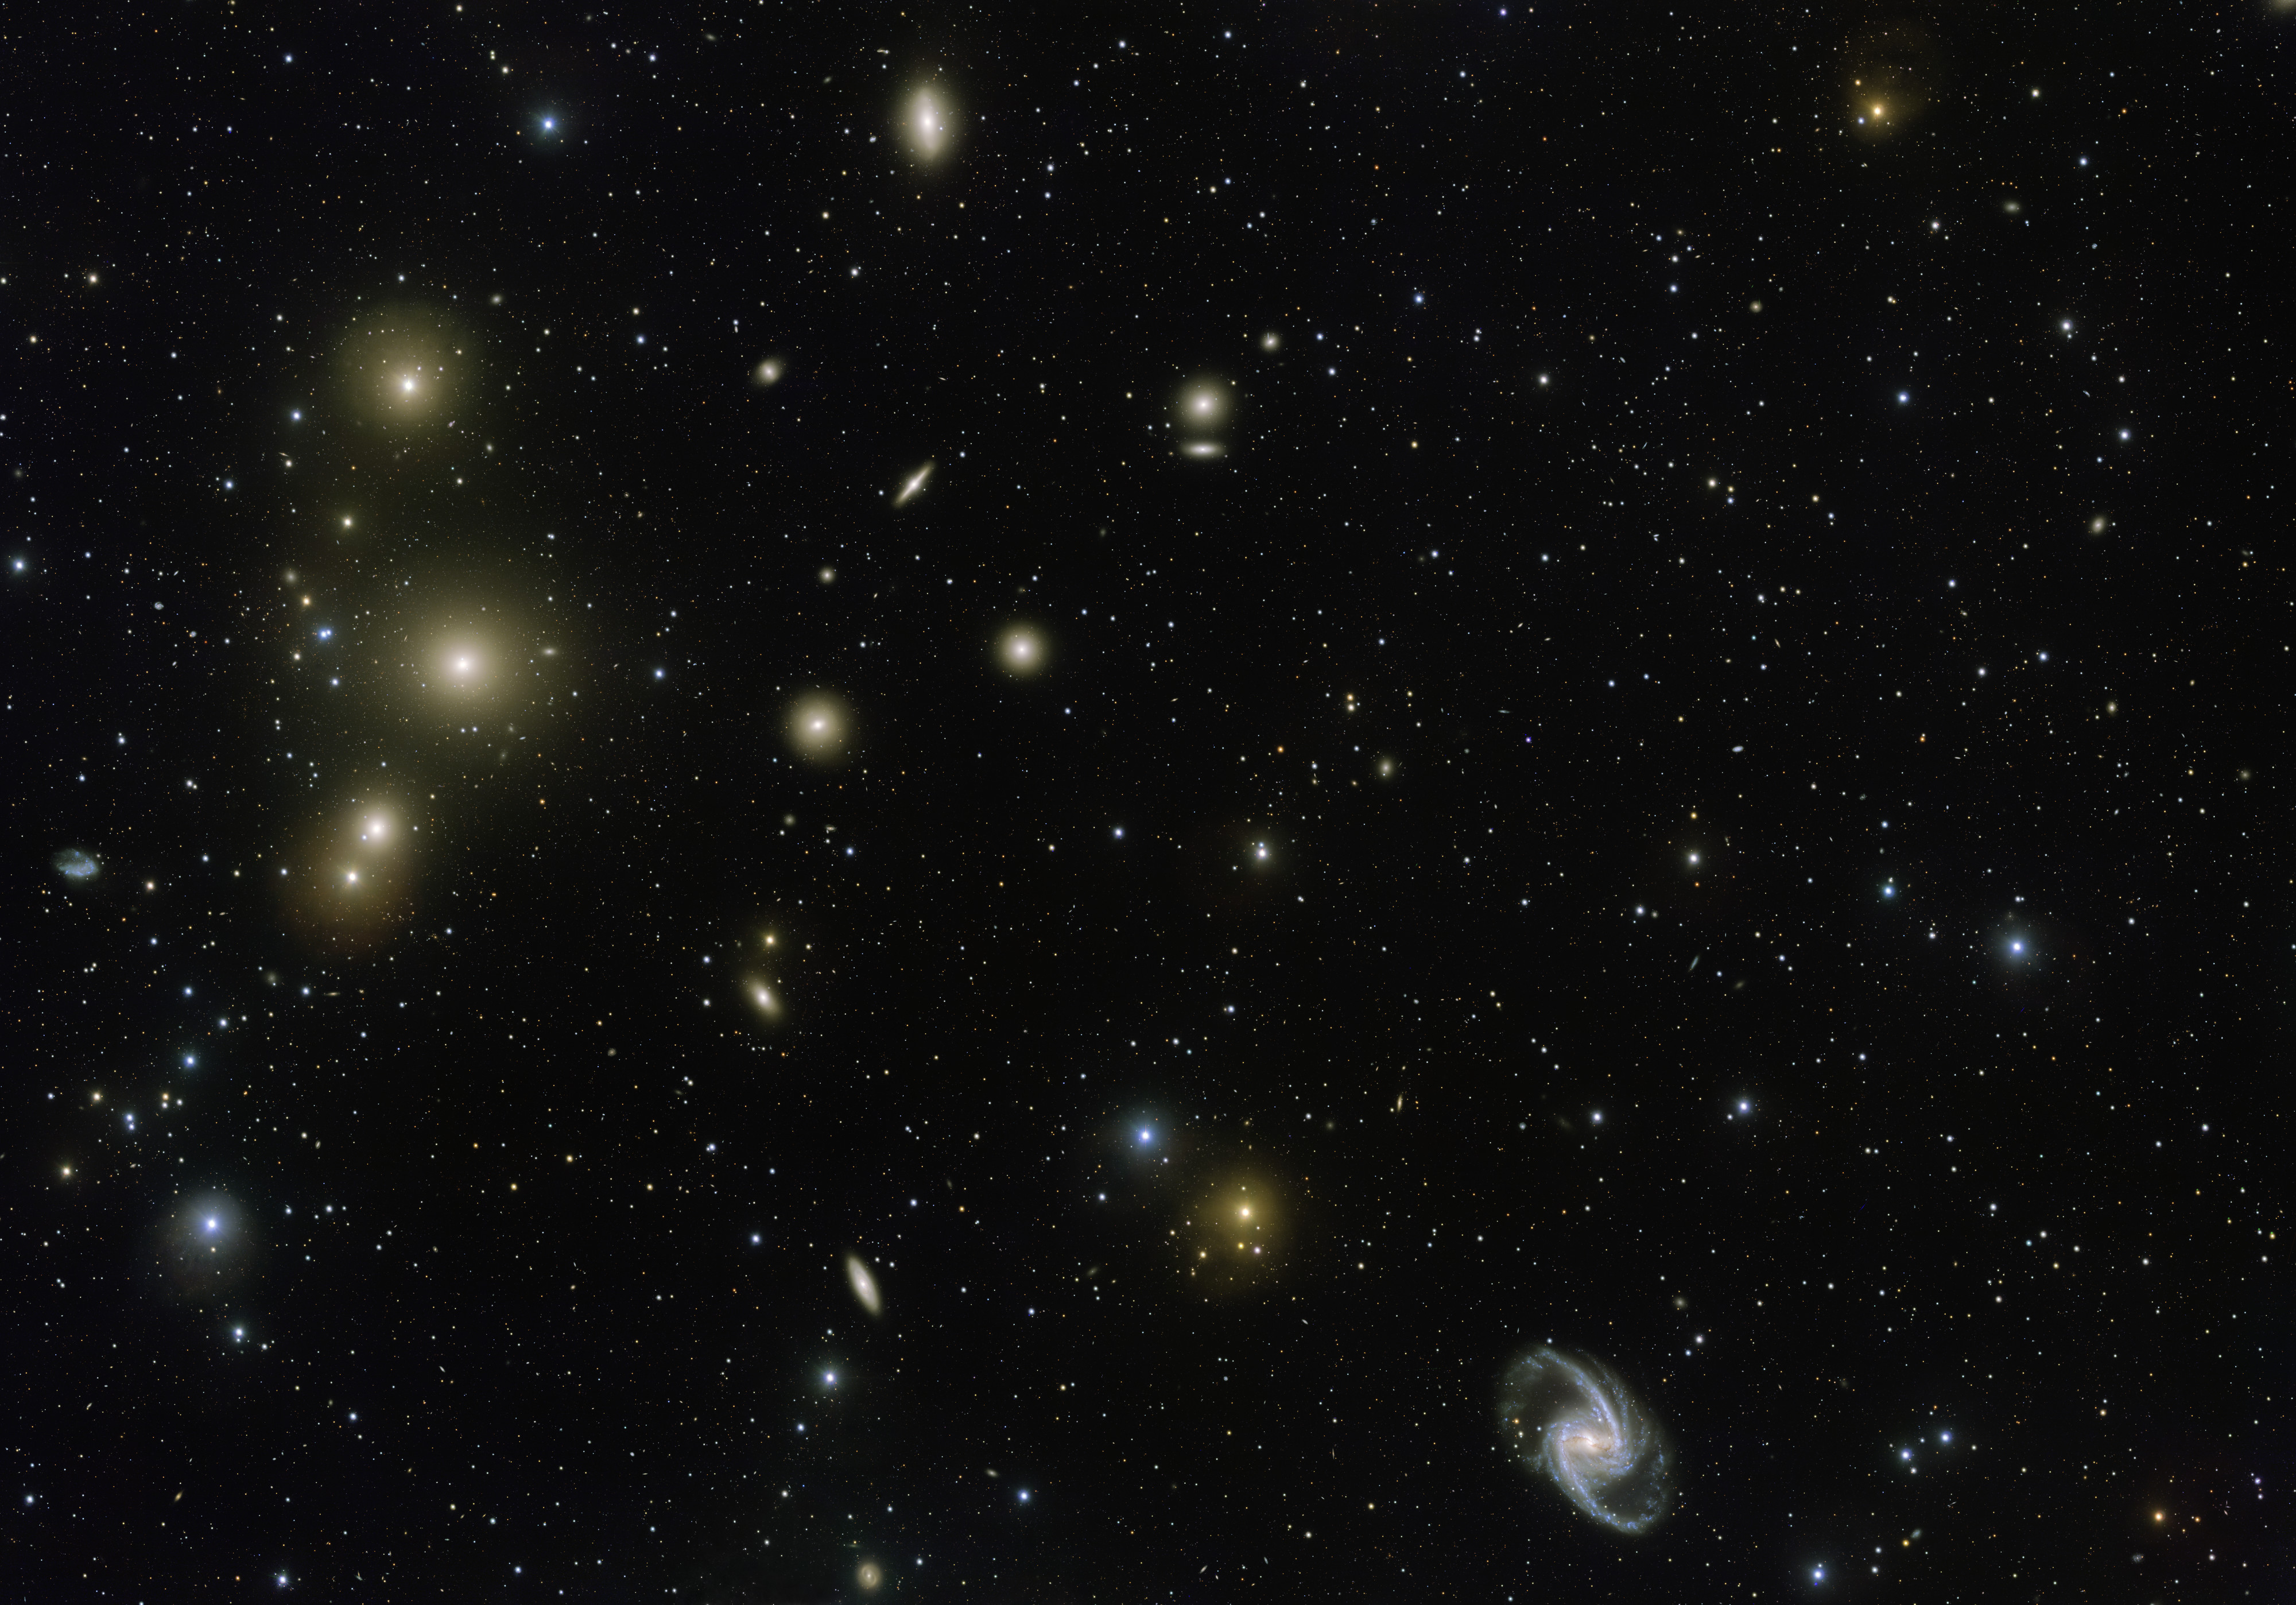 APOD: 2016 June 11 - The Fornax Cluster of Galaxies